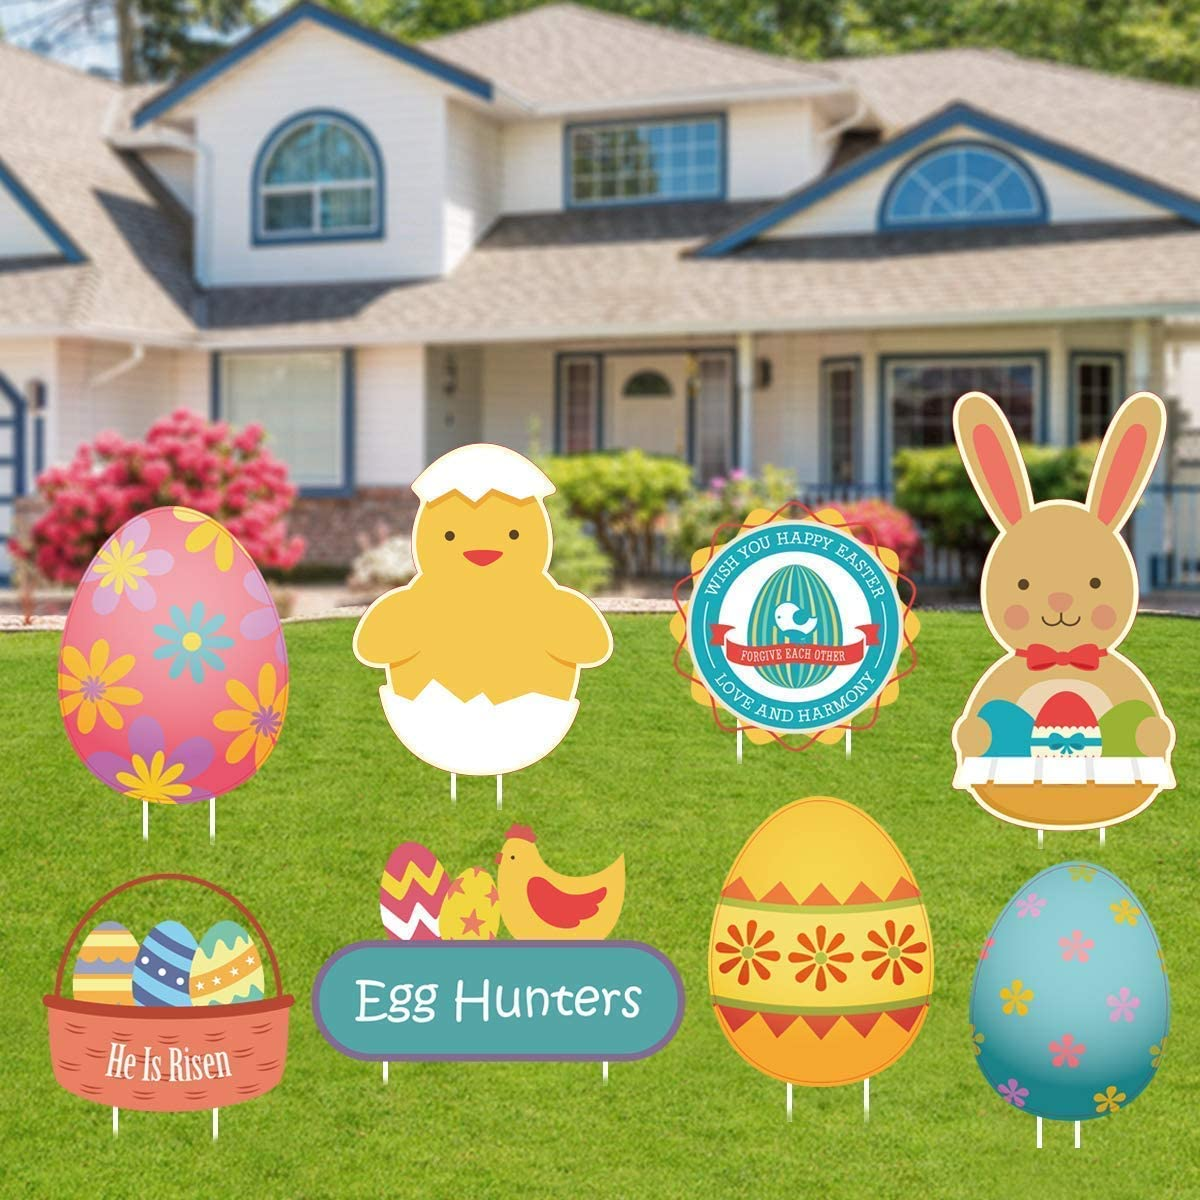 Kyerivs Easter Yard Signs Decorations Outdoor Easter Egg Bunny Chick Yard  Sign Stakes Lawn Yard Decorations Easter Party Decor for Easter Hunt Game